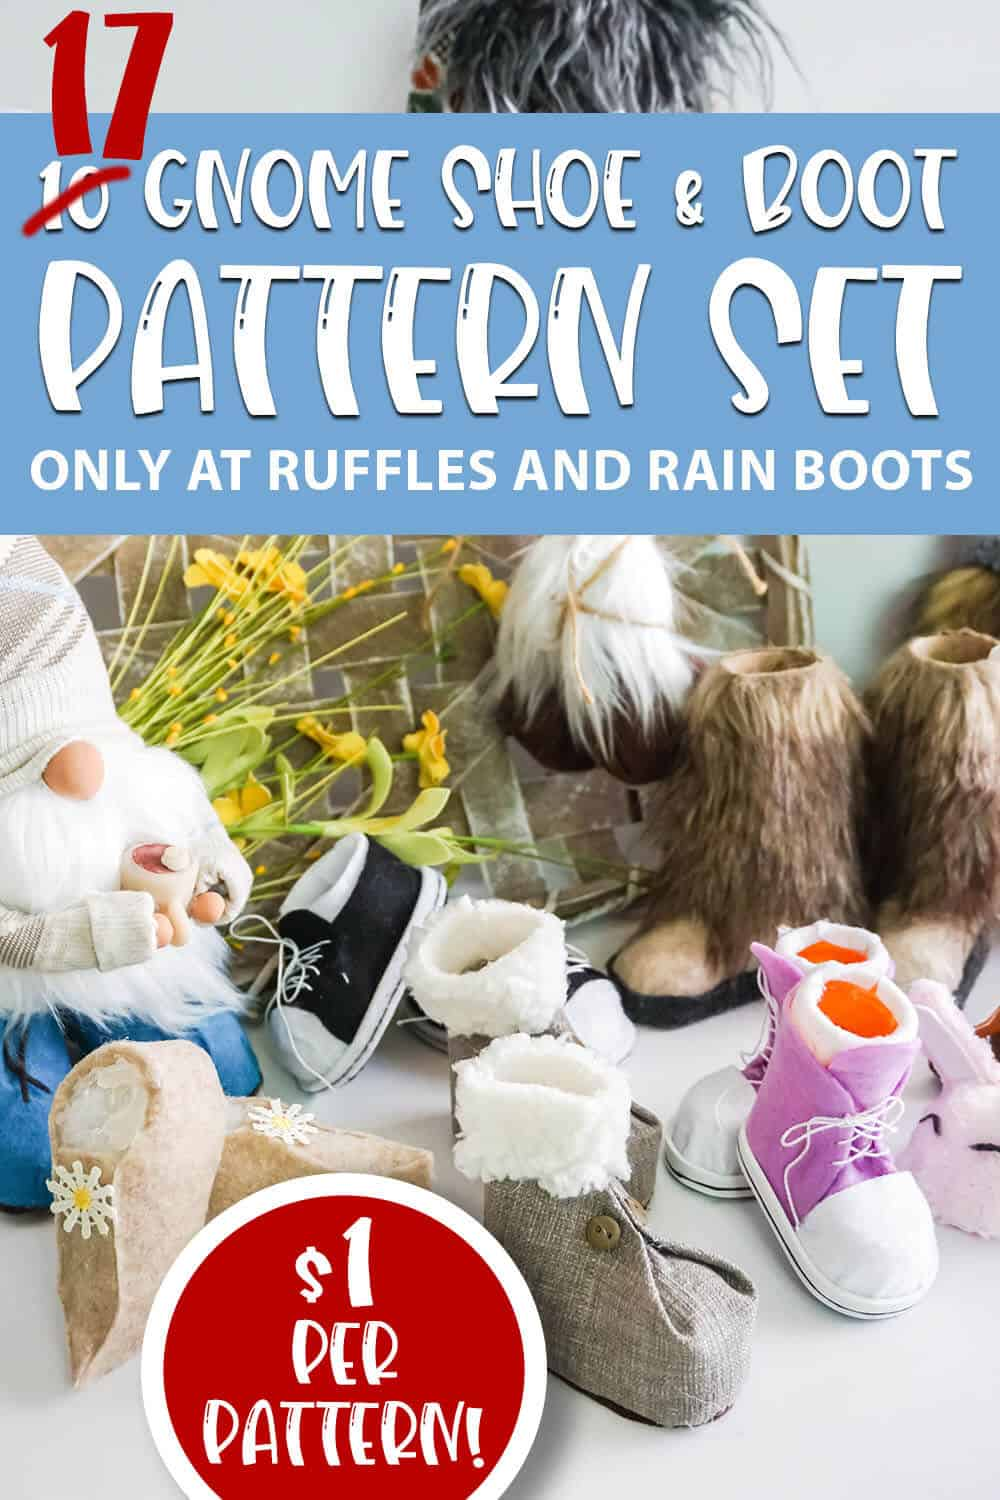 pattern for gnome shoes with text which reads 17 gnome shoe & boot pattern set